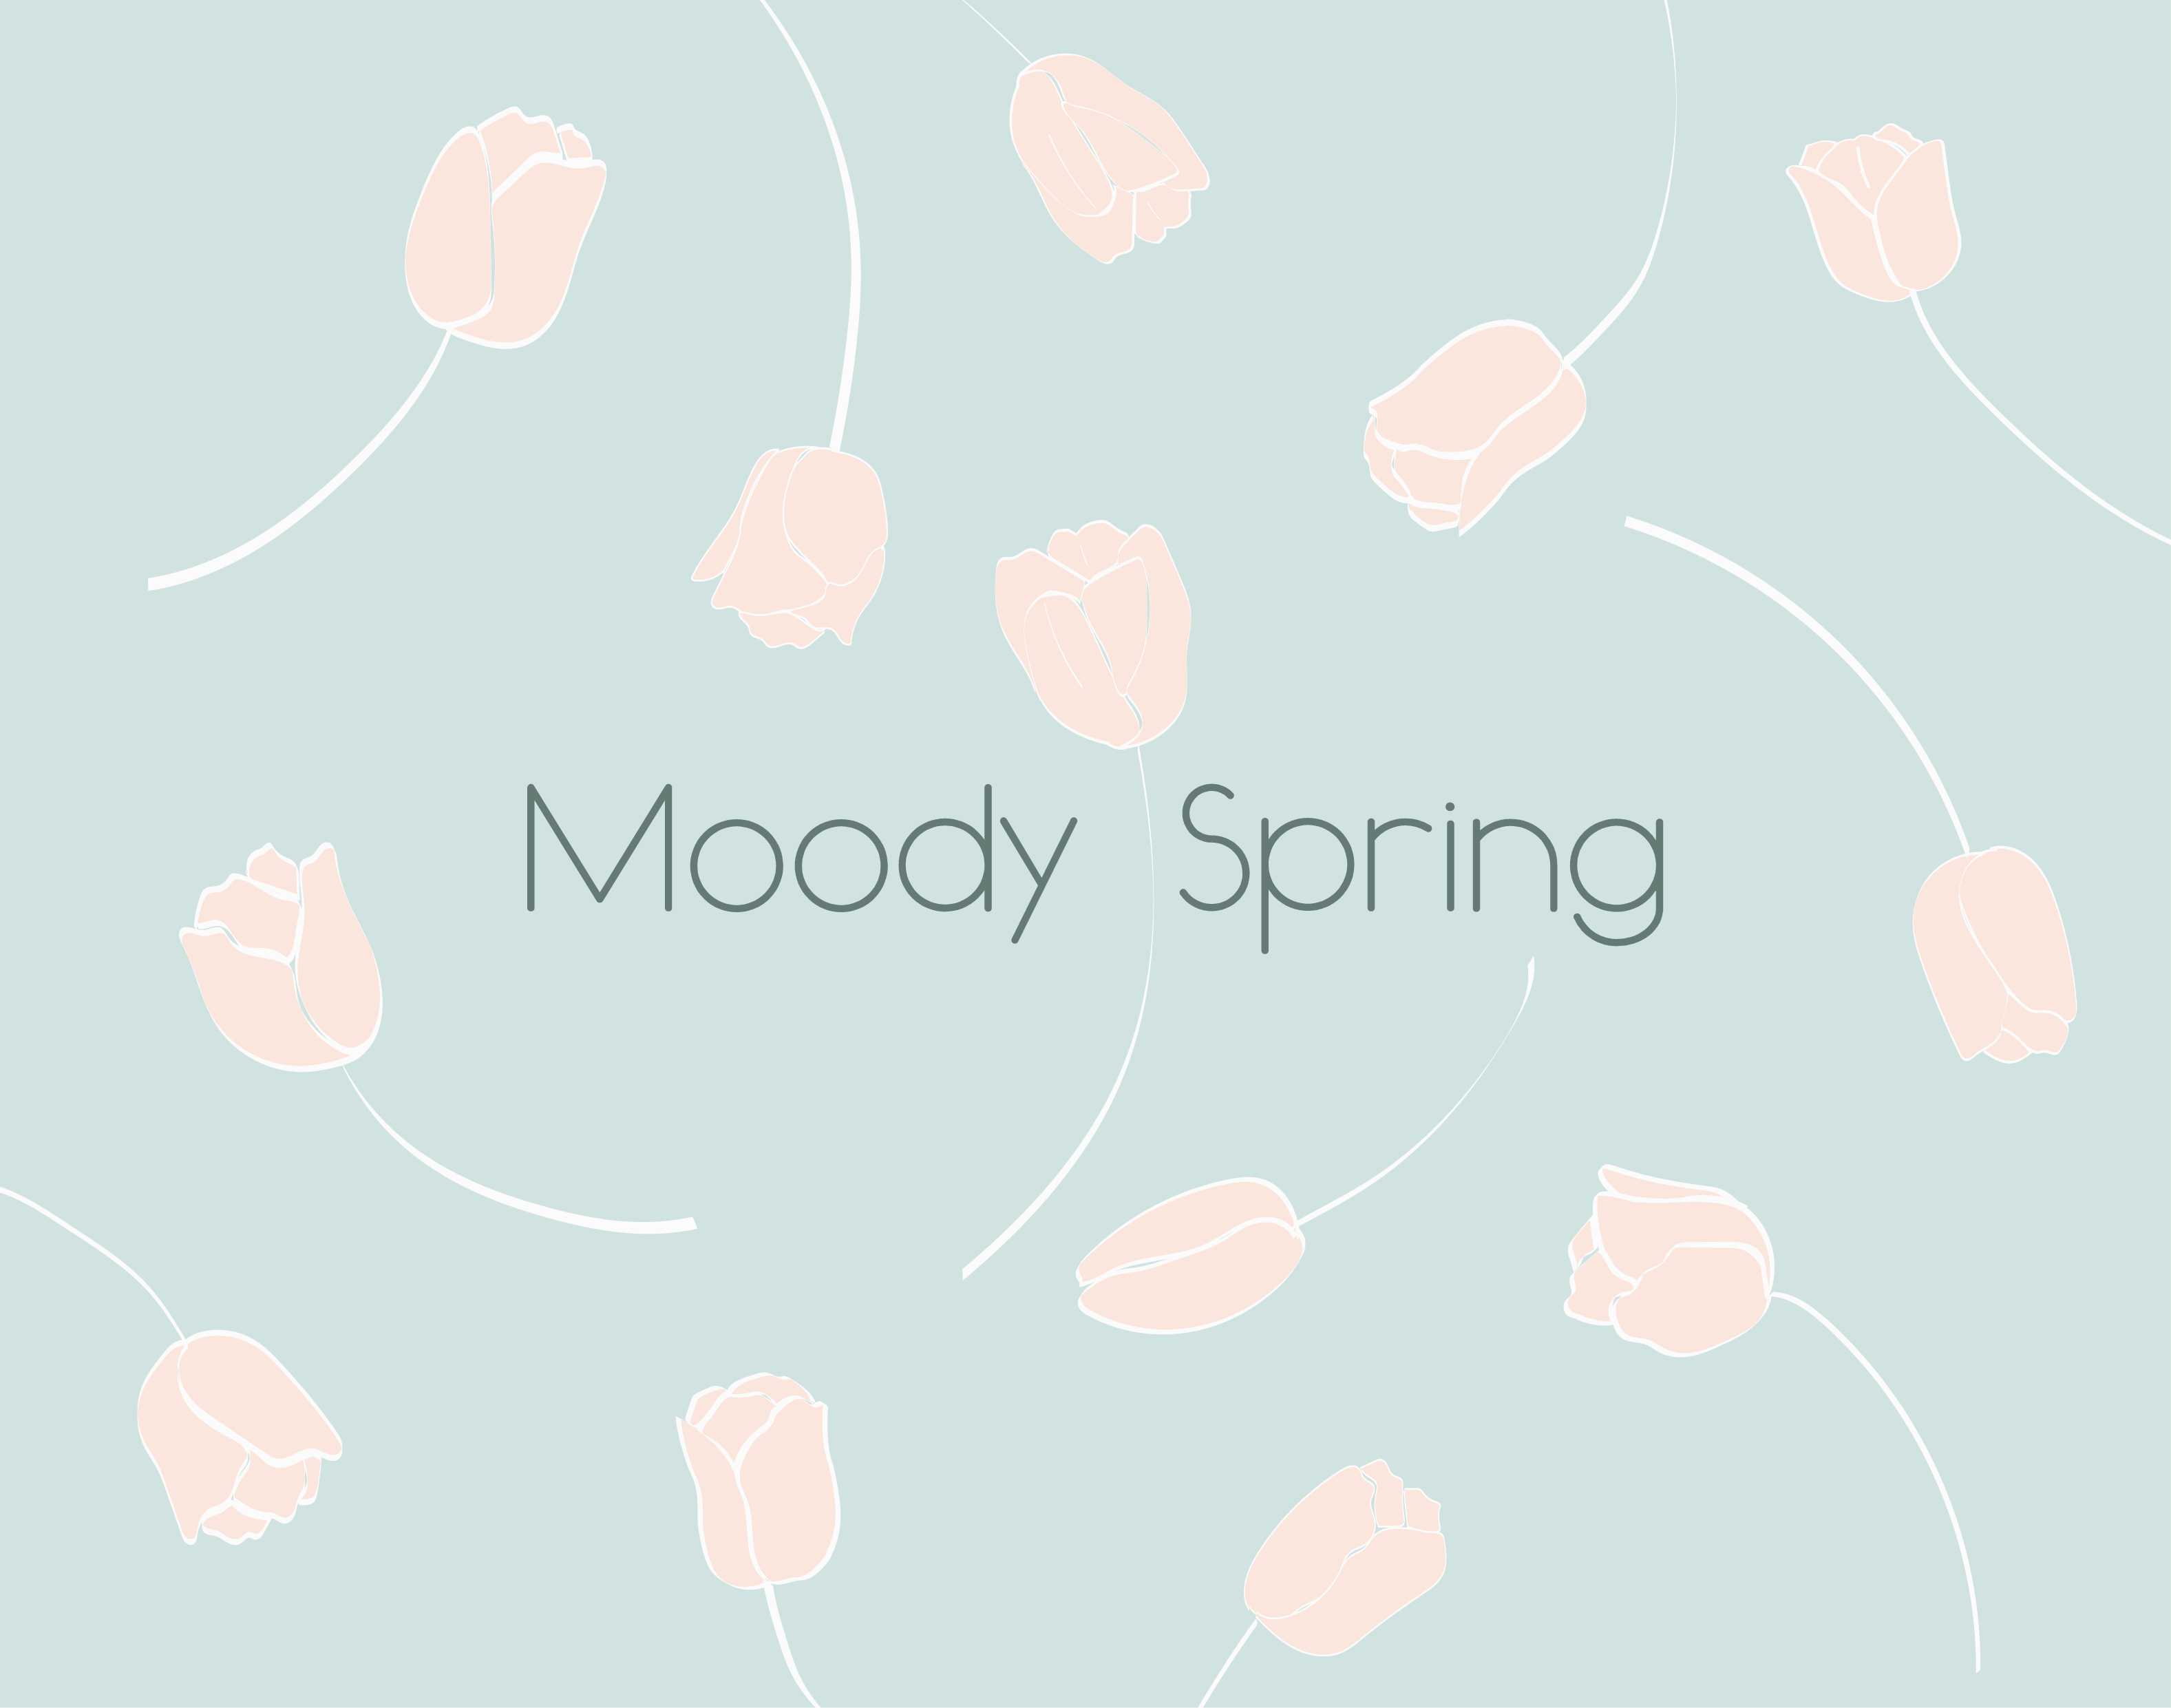 Moody Spring